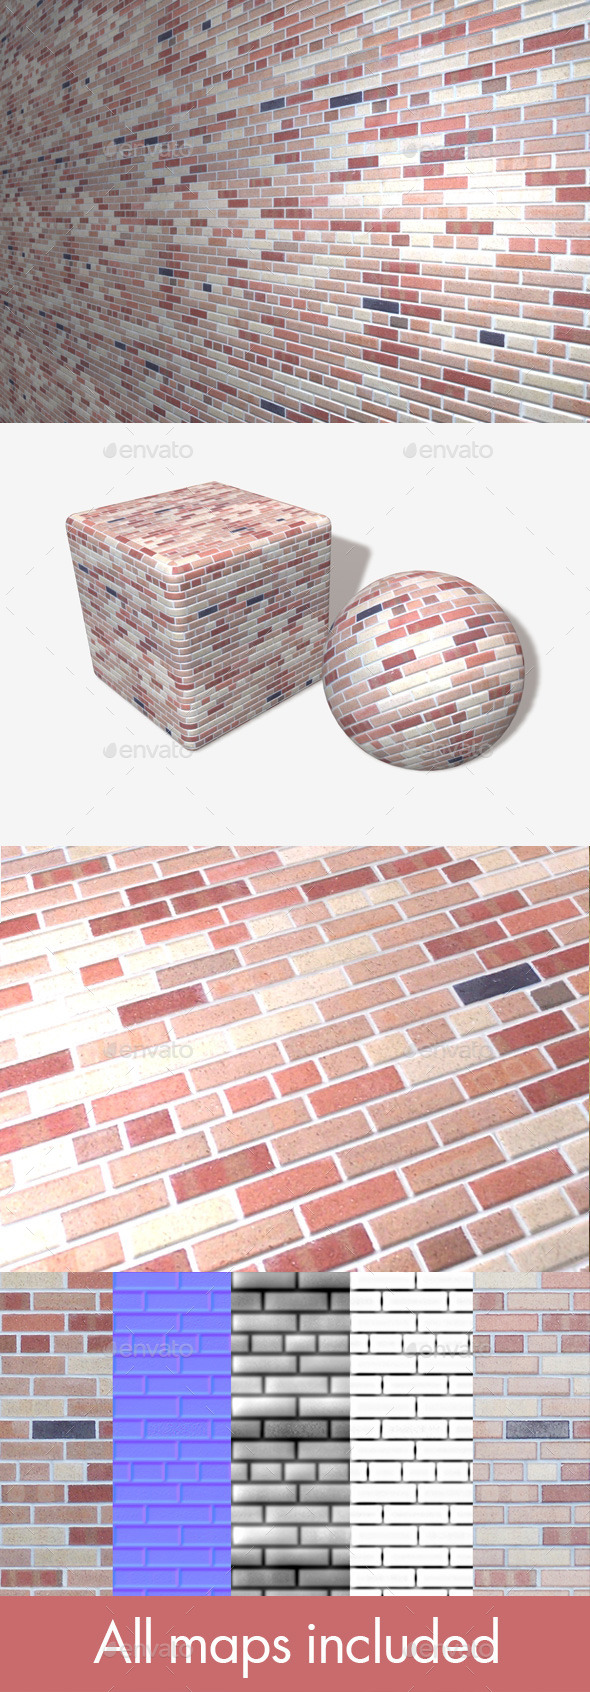 Neat Multicolour Bricks Seamless Texture - 3DOcean Item for Sale